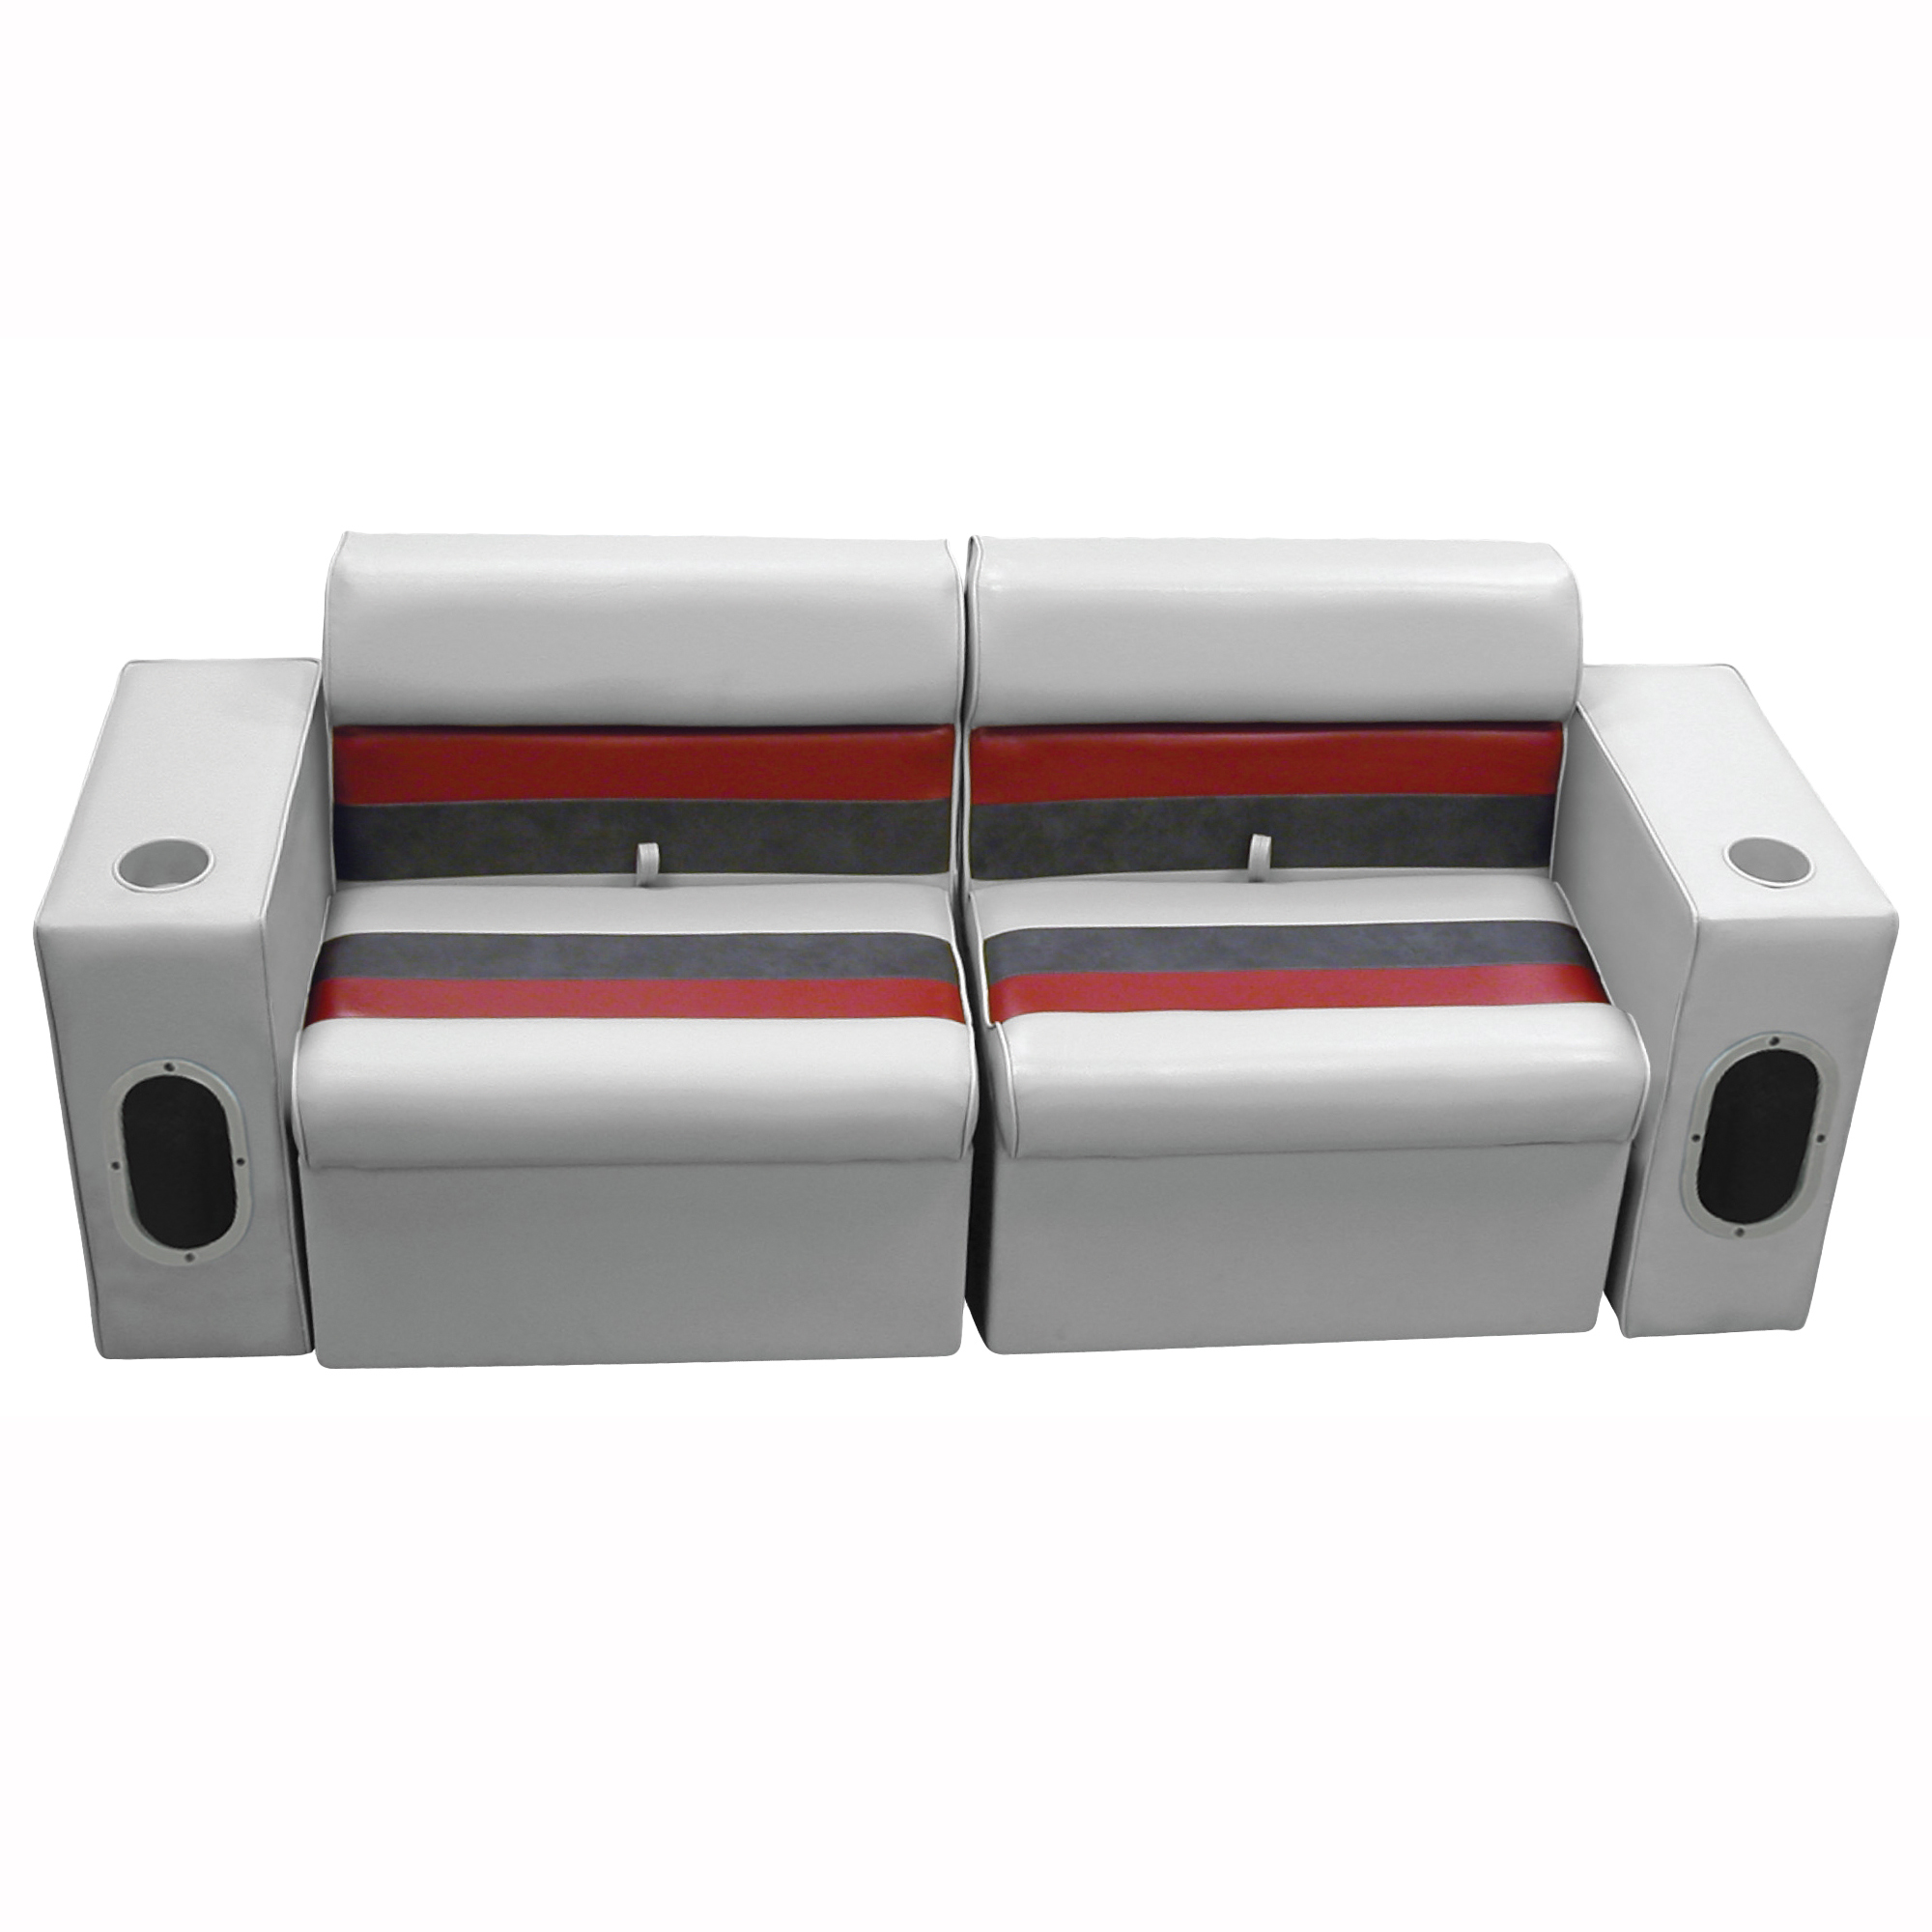 Deluxe Pontoon Furniture w/Classic Base - Front Group Package E, Gray/Red/Charco